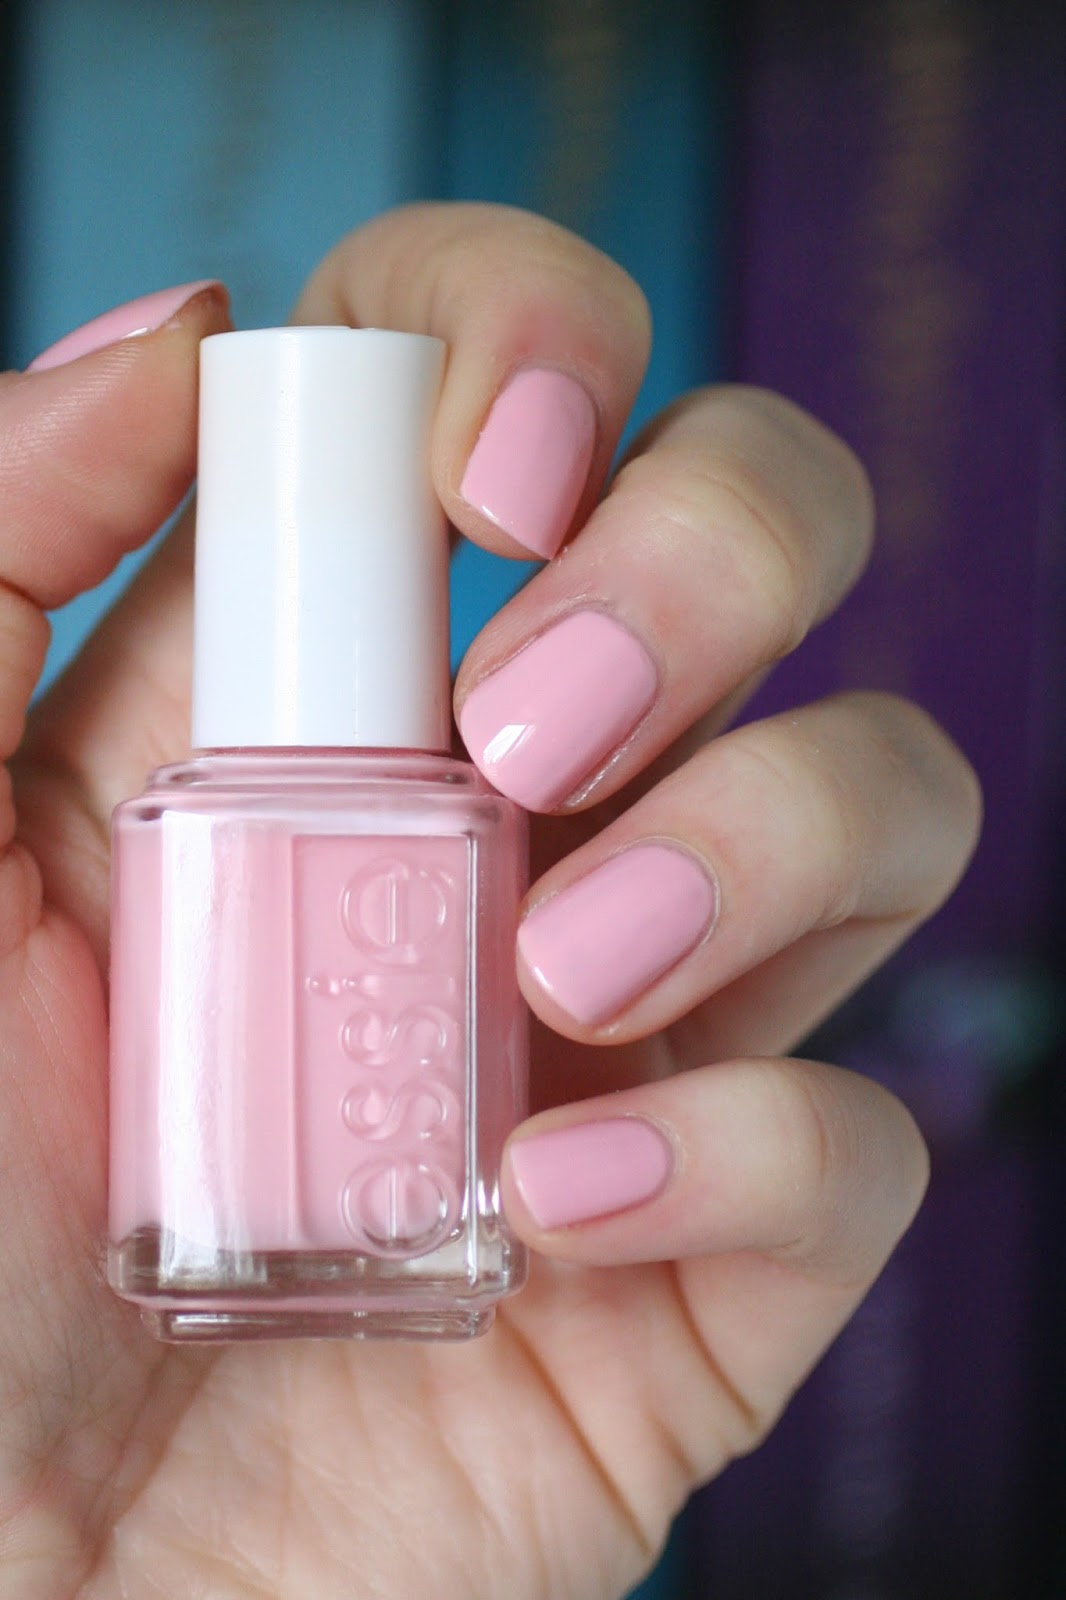 The Best Selling Essie Polishes Of All-Time (with Swatches